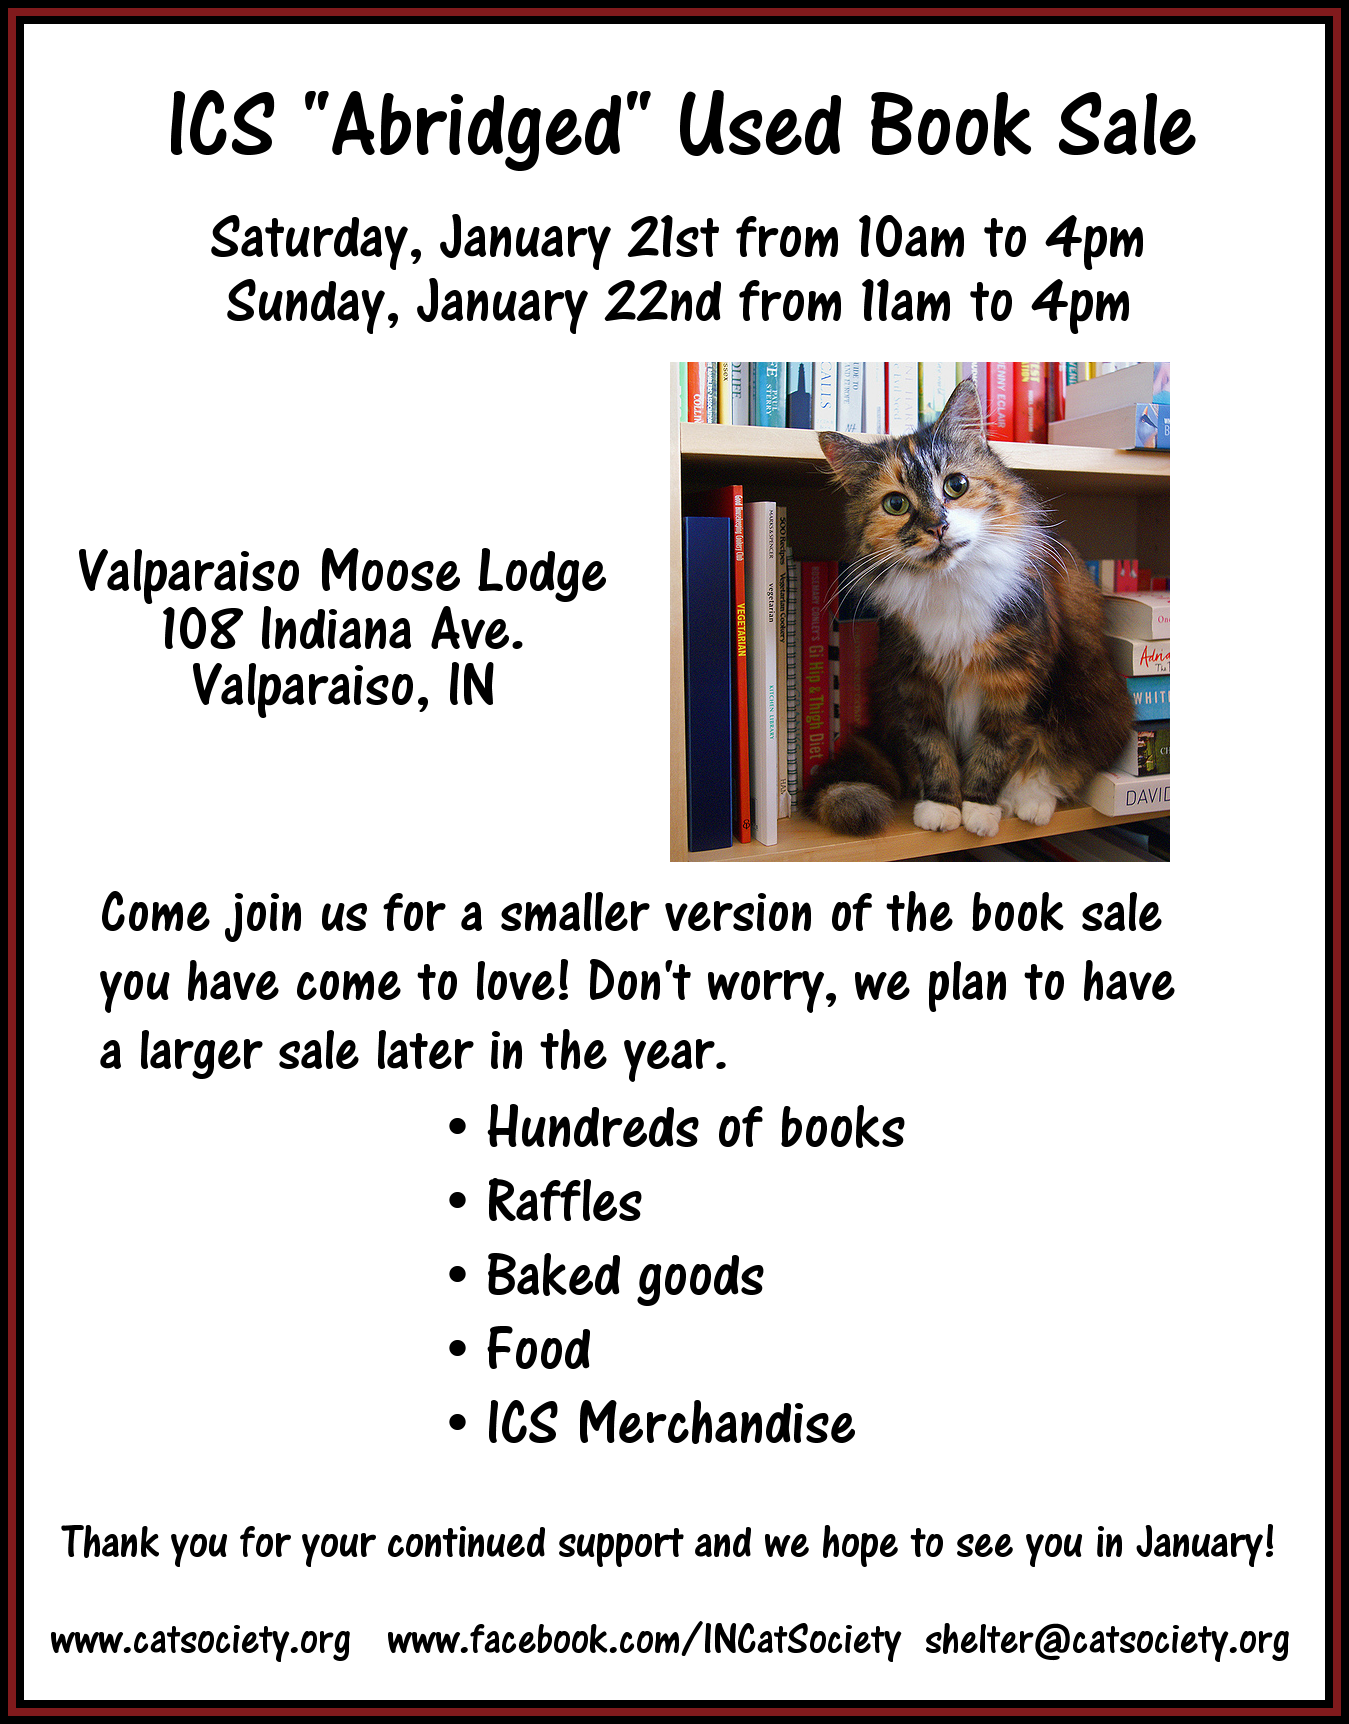 ICS Abridged Used Book Sale